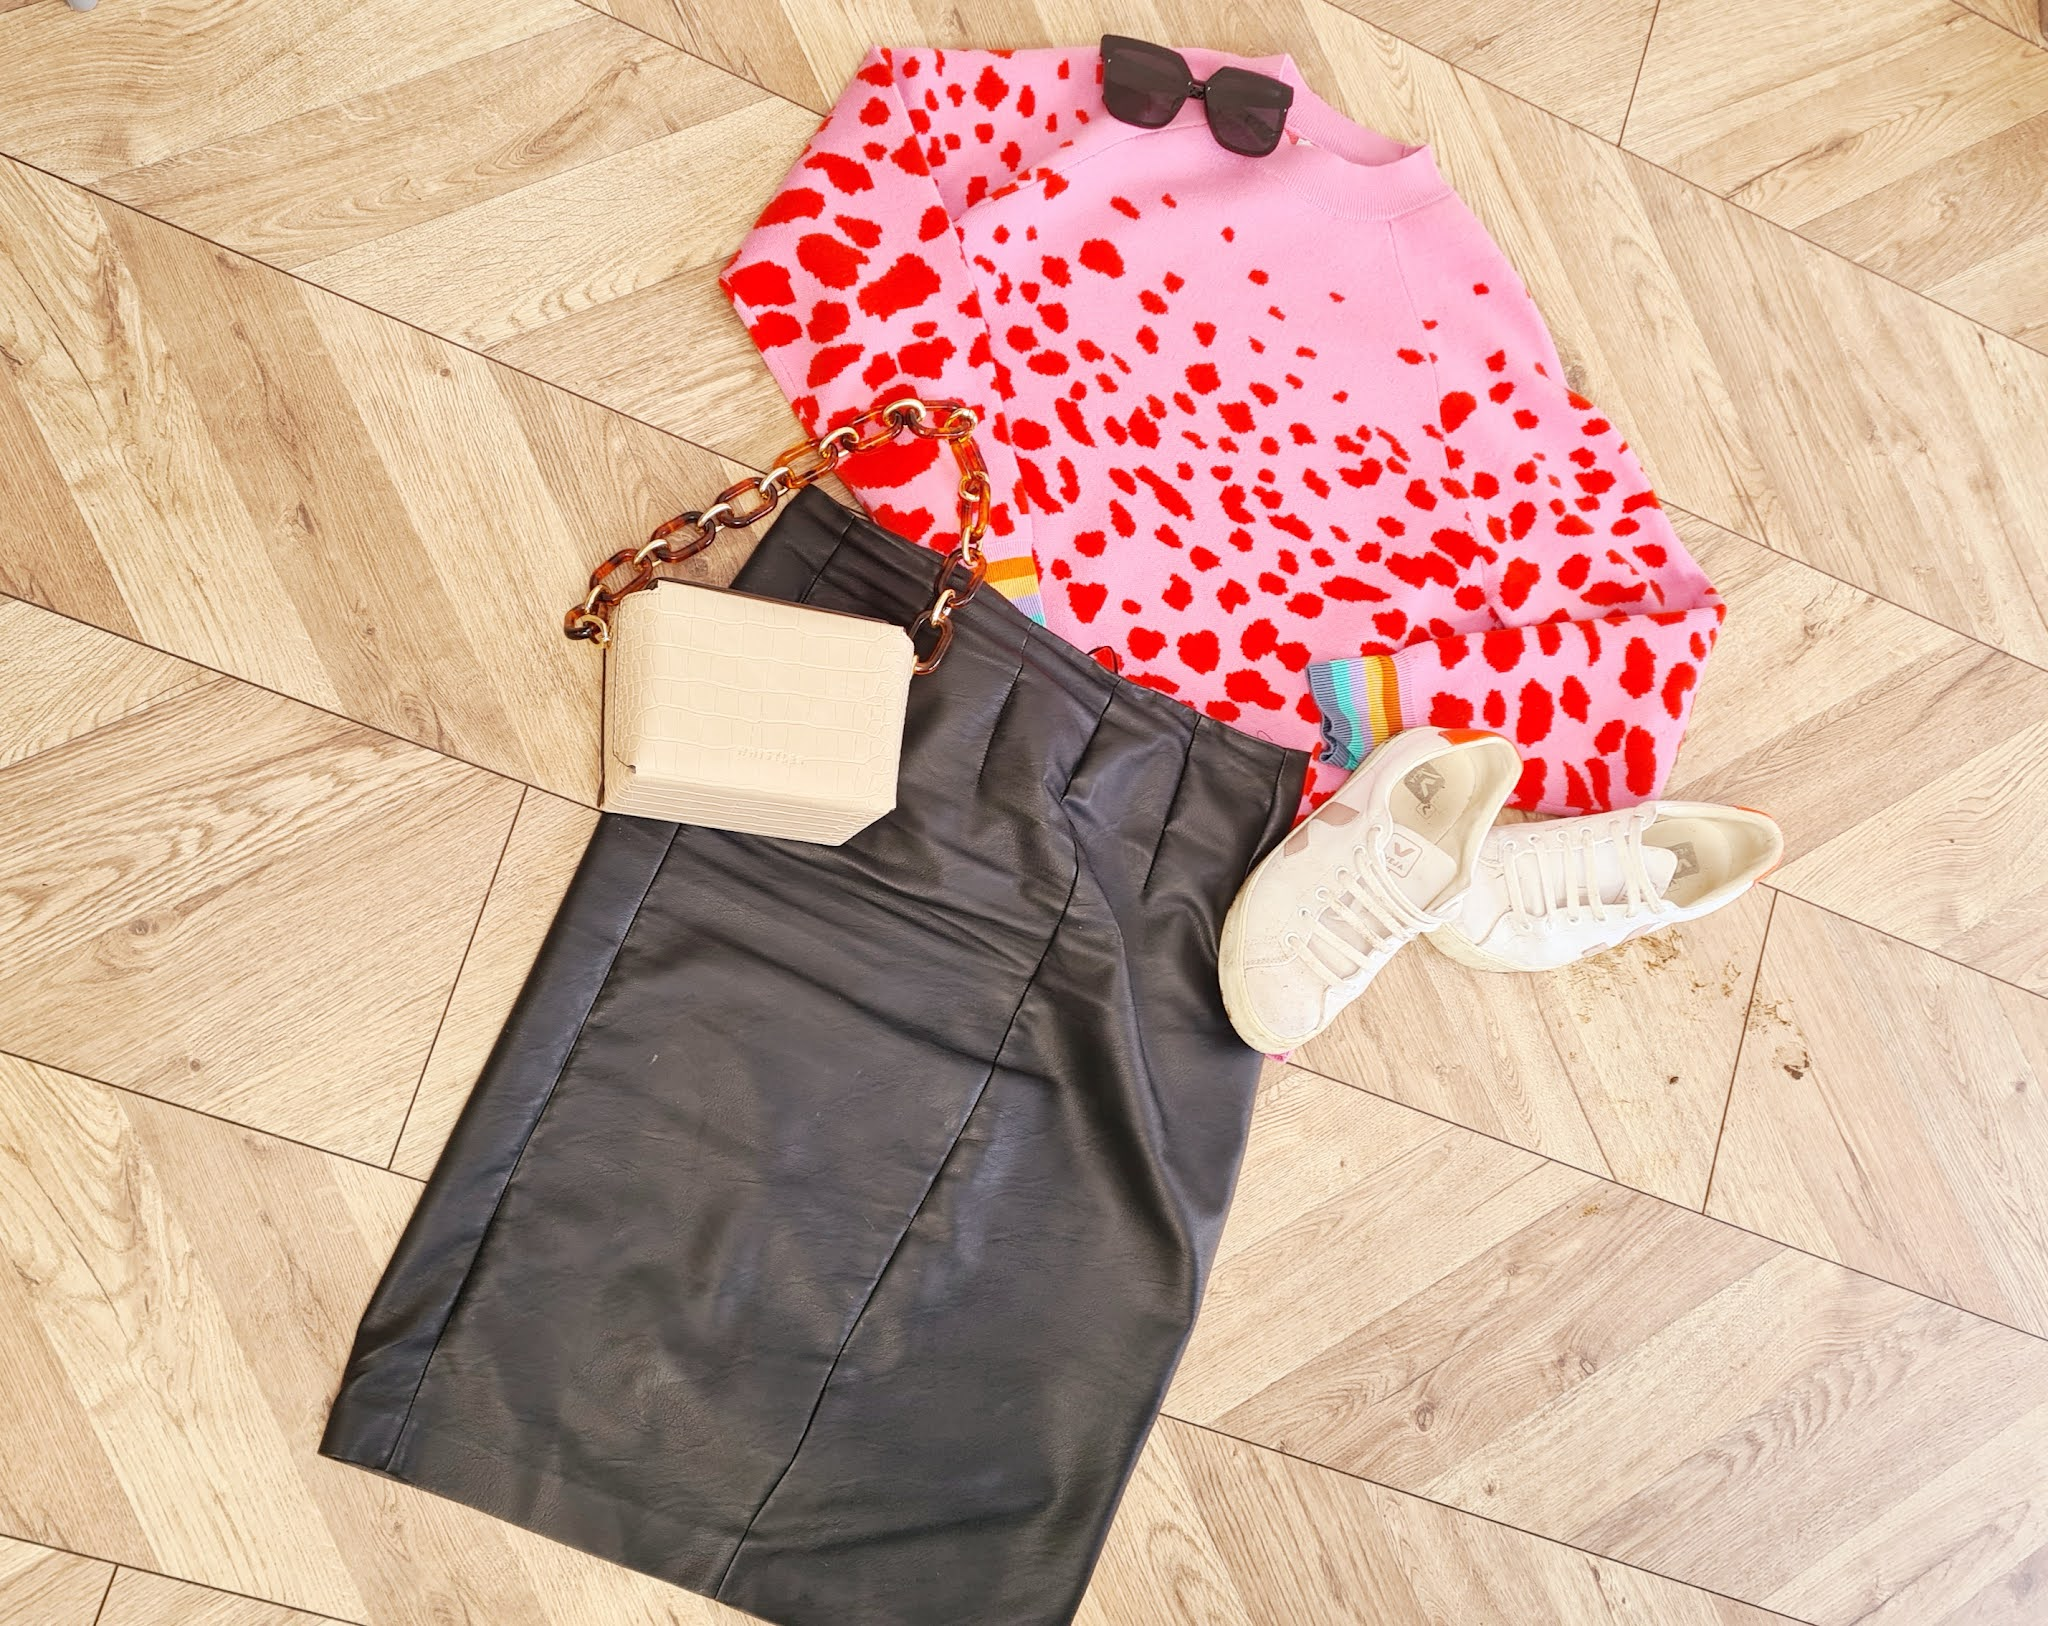 School run outfit, outfit ideas, mum outfit, leopard jumper outfit, leather skirt outfit, casual outfit ideas, autumn outfit, fall outfit